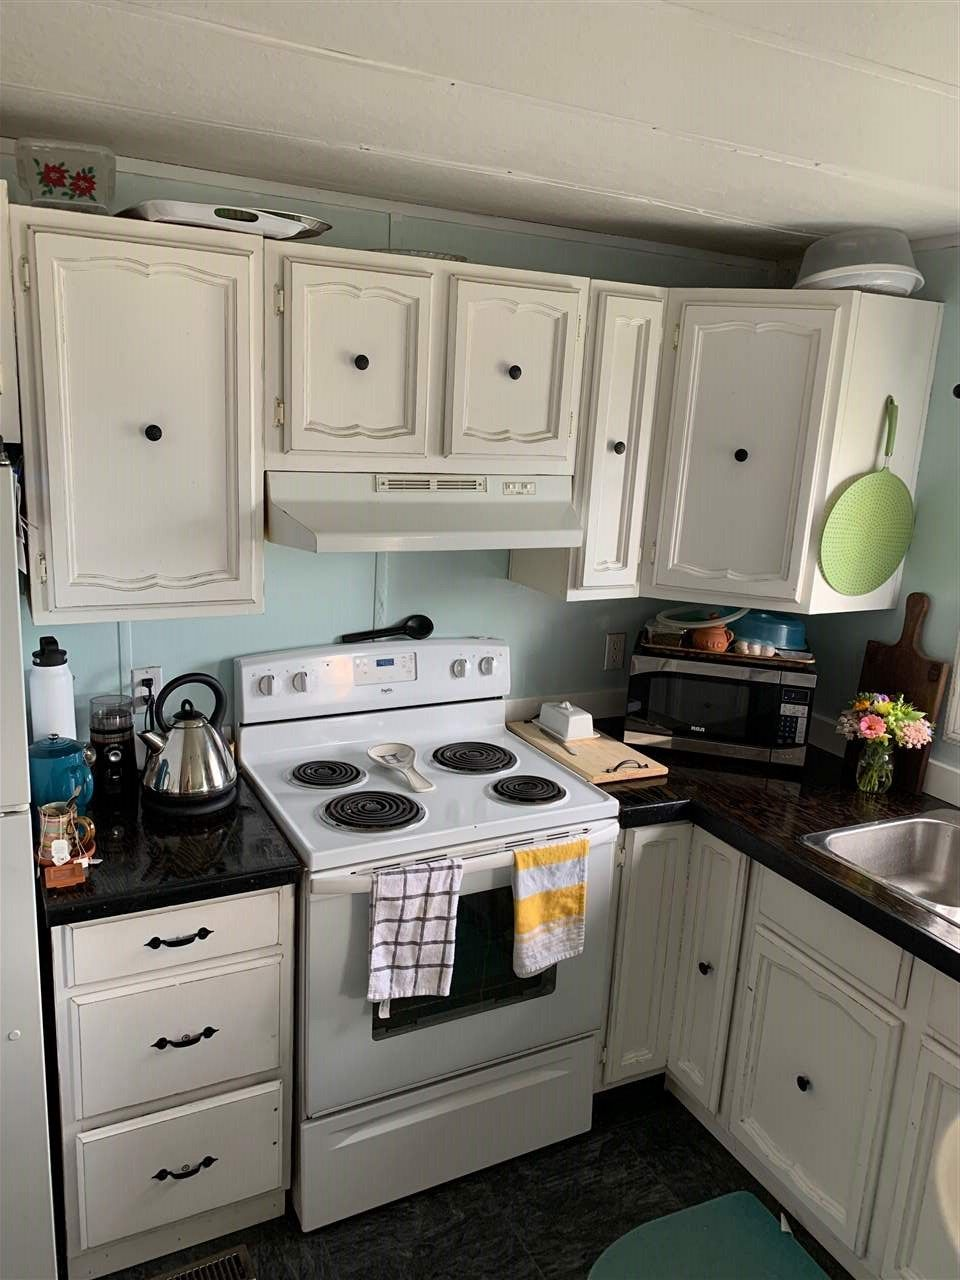 """Photo 2: Photos: 78 8420 ALASKA Road in Fort St. John: Fort St. John - City SE Manufactured Home for sale in """"PEACE COUNTRY"""" (Fort St. John (Zone 60))  : MLS®# R2495486"""